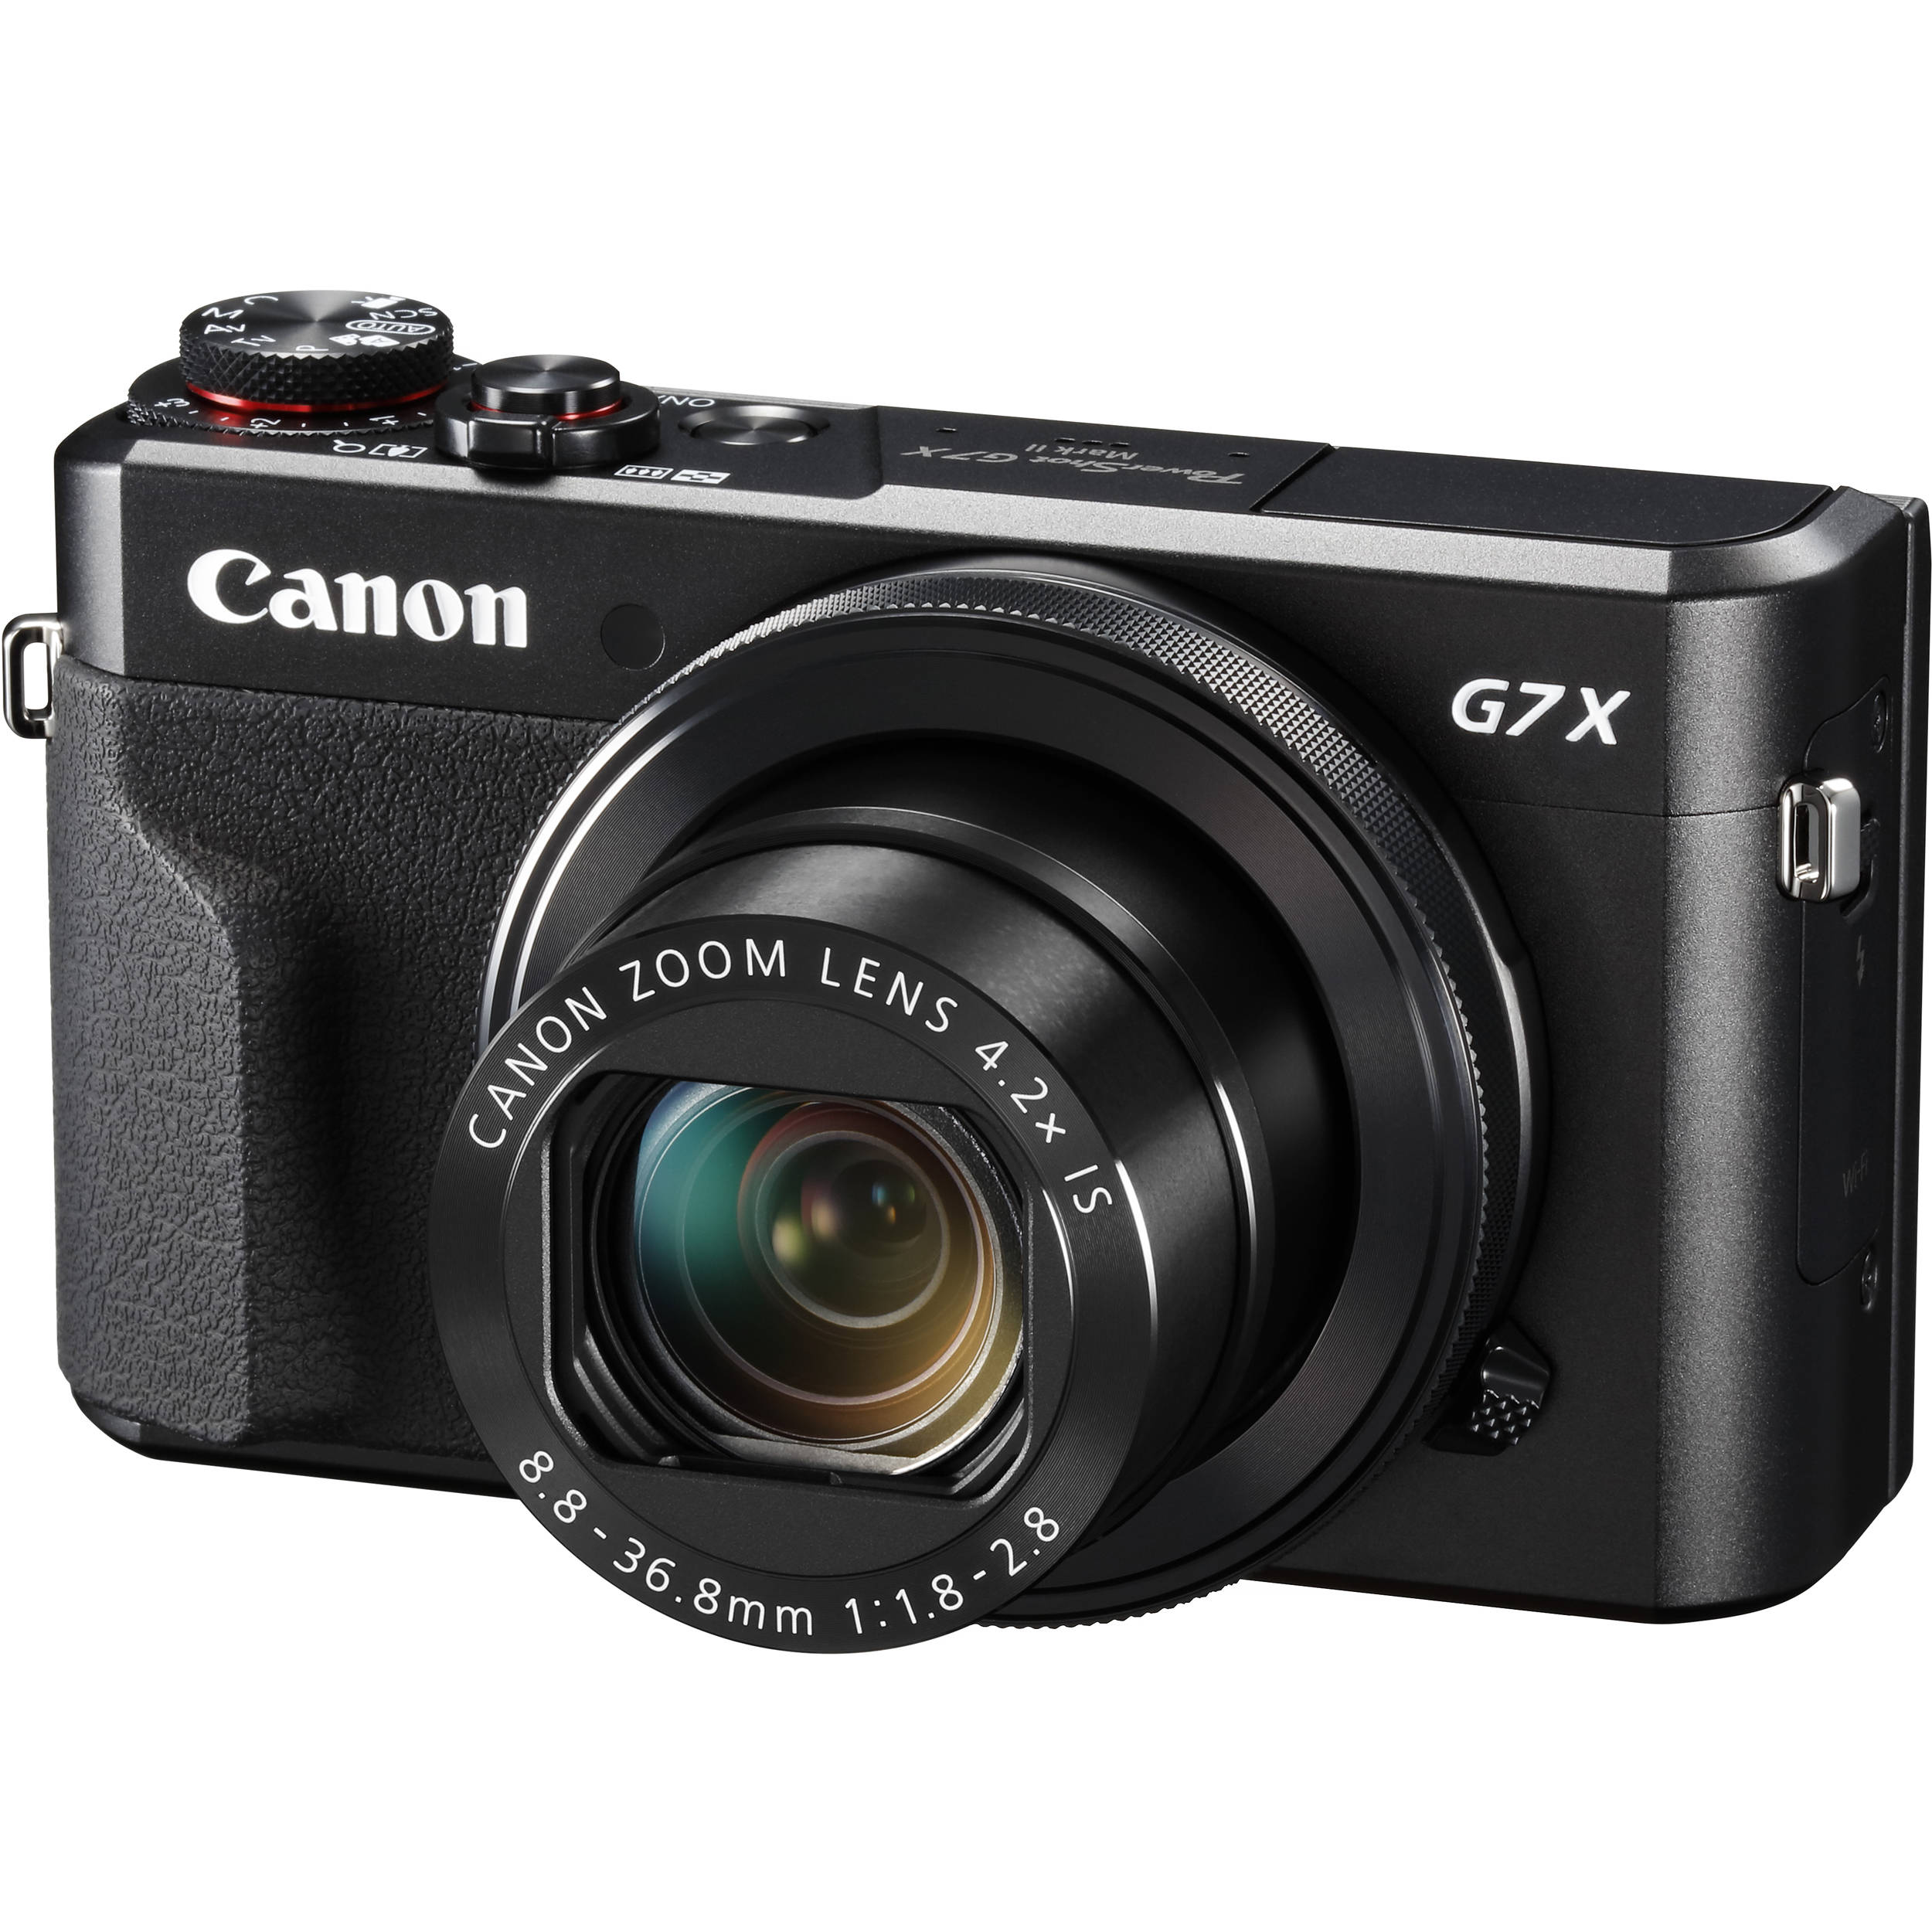 Canon Powershot G7X - This camera is perfect for shooting videos, it does 4K and is the most popular choice amongst Youtubers. I find it perfect for moments when I am going to an event and don't want to bring my big Sony a7R III.